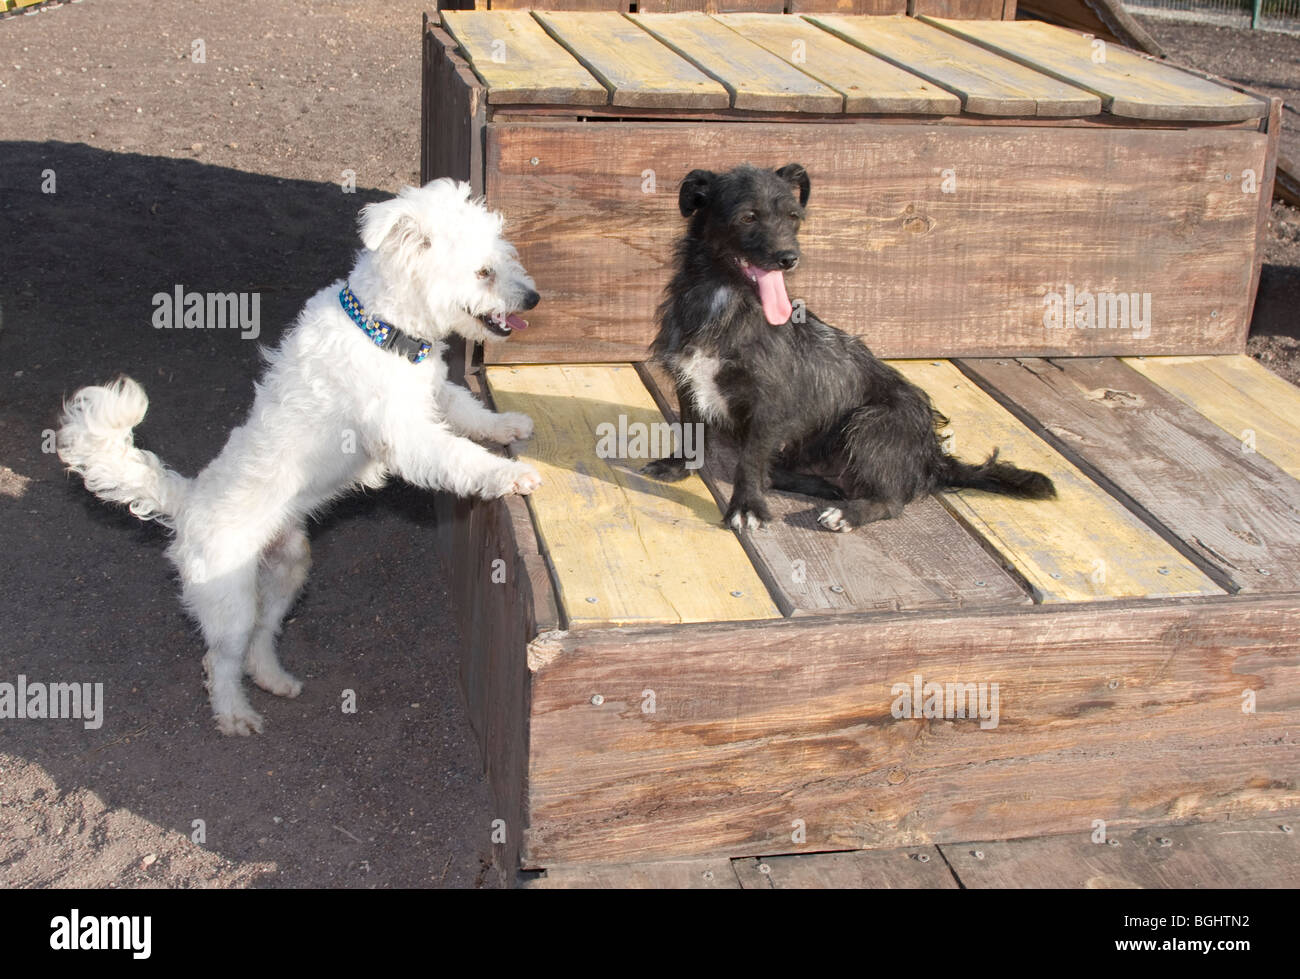 Dogs playing on a sunny day - Stock Image